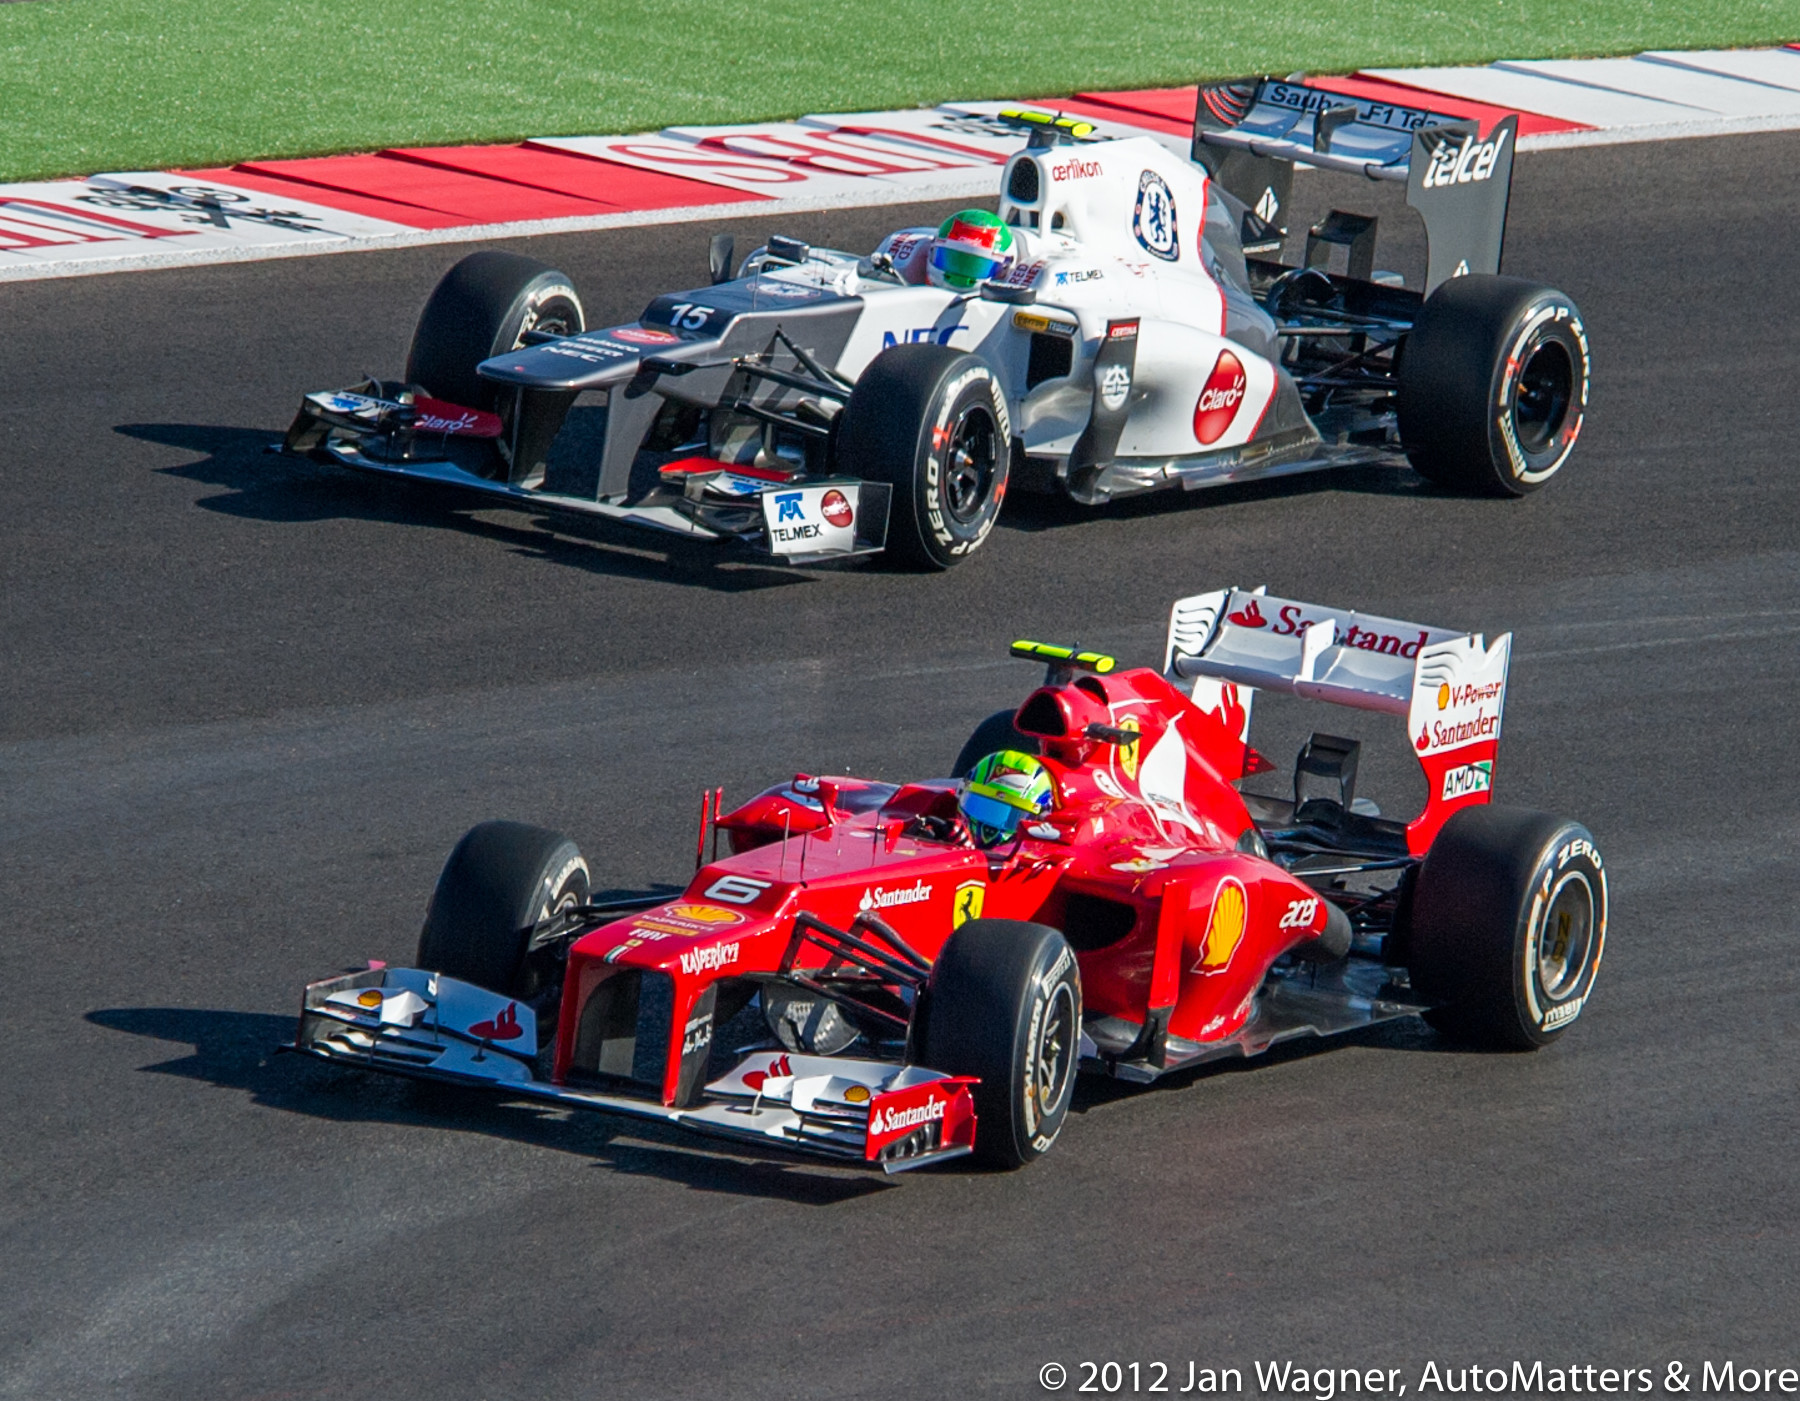 2012 Formula 1 United States Grand Prix in Austin, Texas.